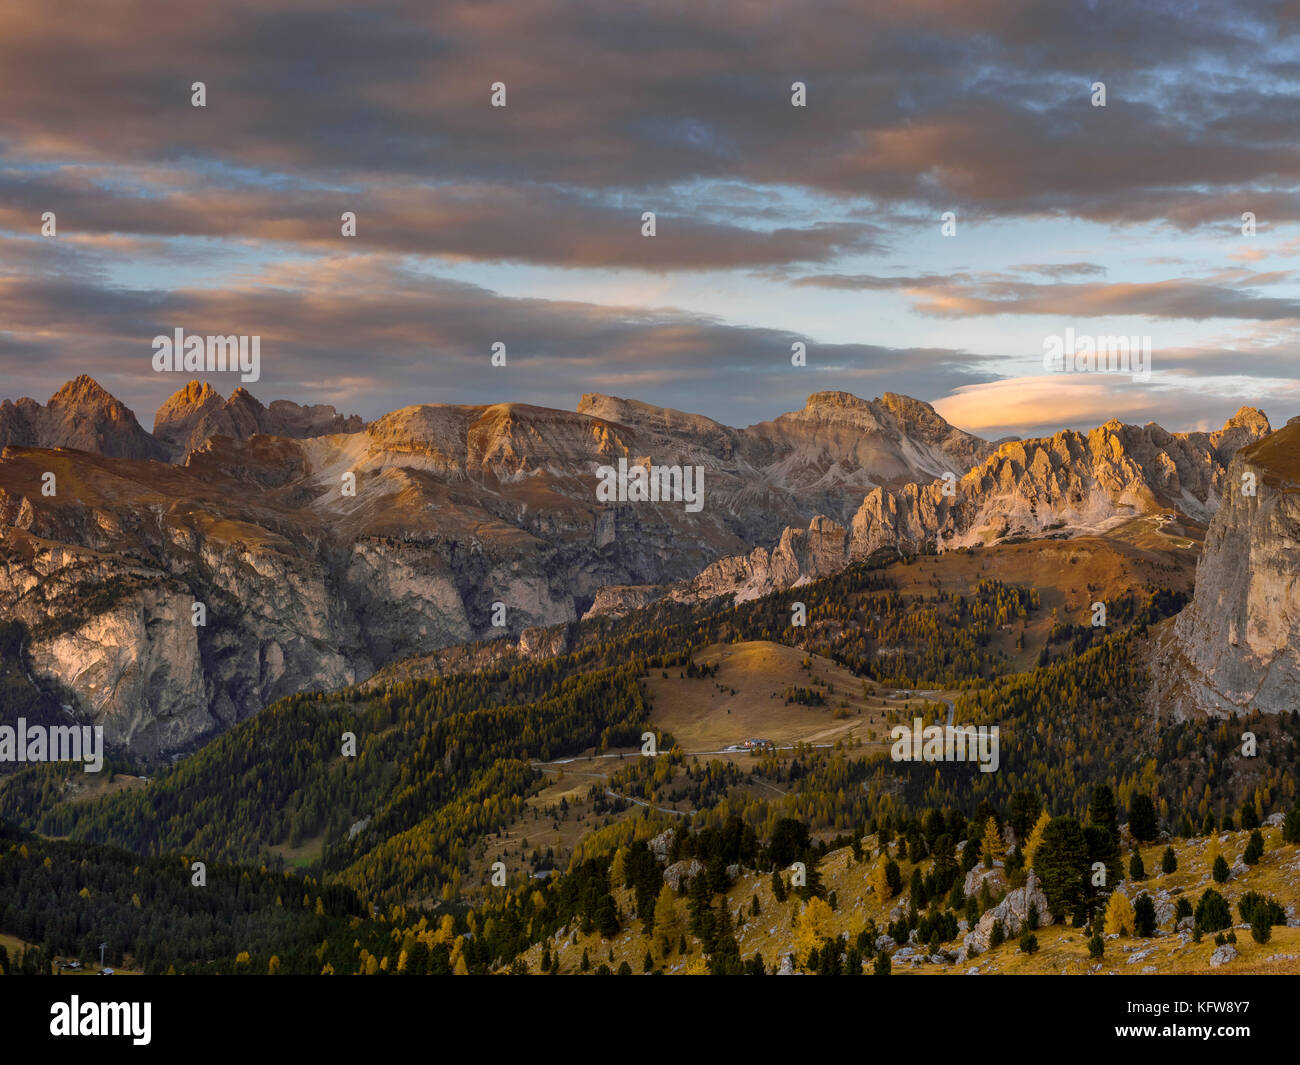 View in the direction of the Groedner Pass from the Sella Pass, Province of Bolzano-Bozen, South Tyrol, Italy, Europe Stock Photo